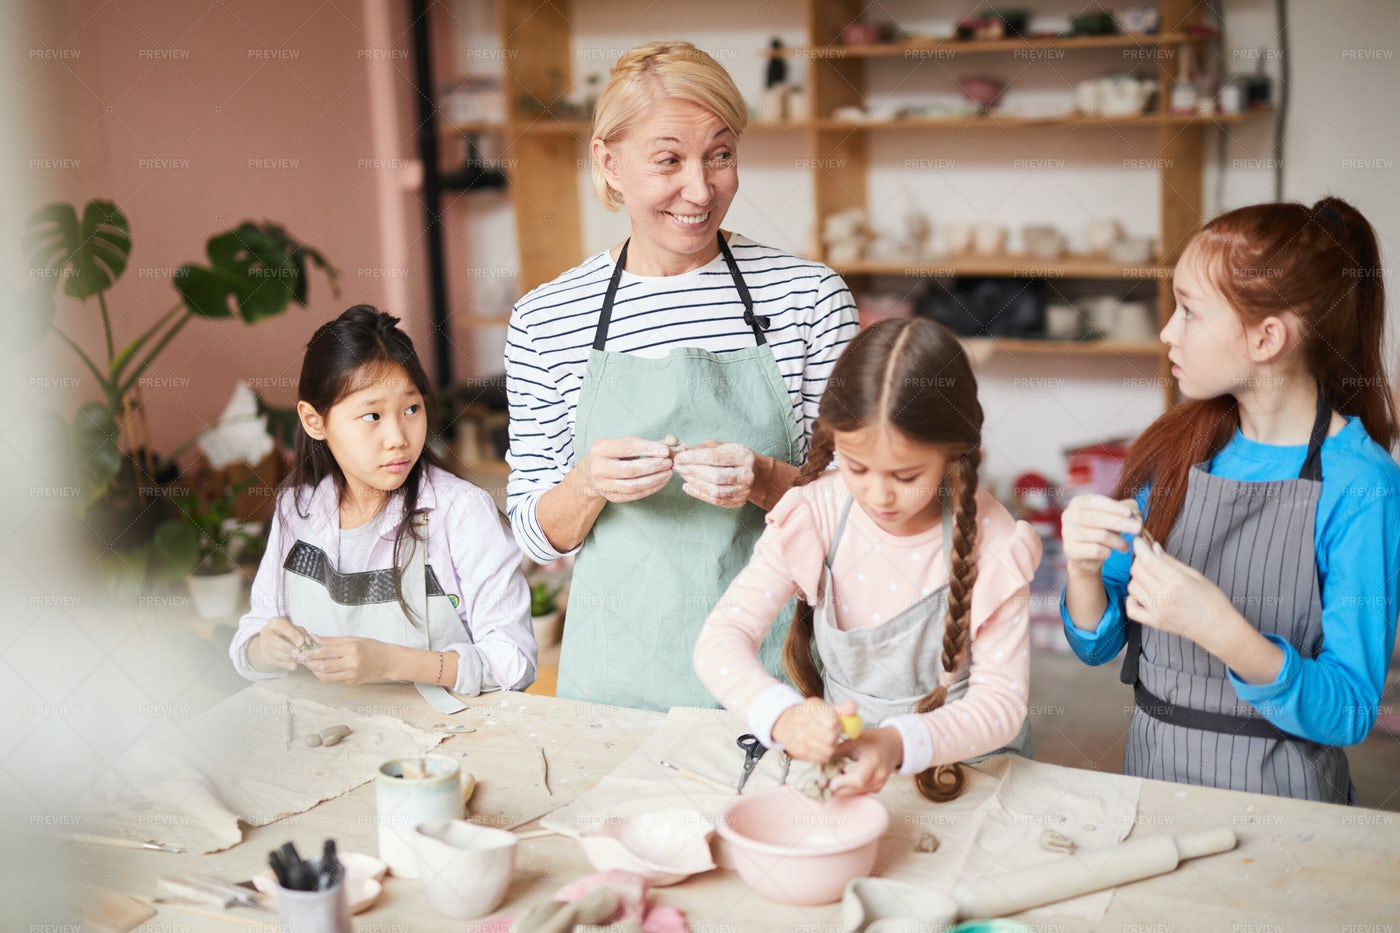 Pottery Class For Kids: Stock Photos